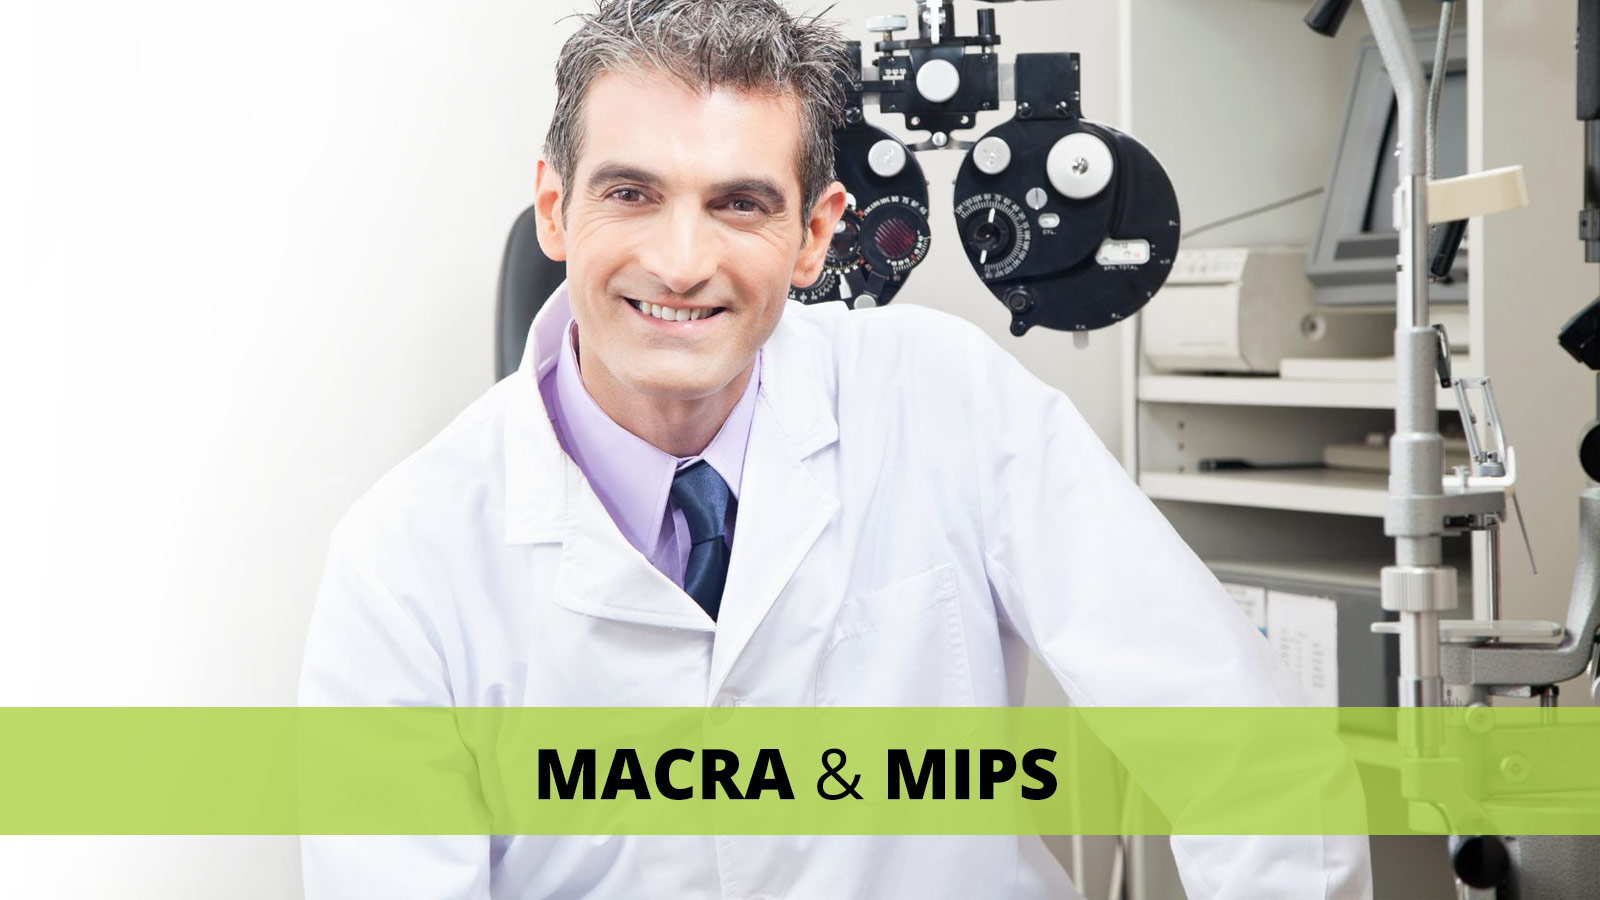 MACRA-MIPS-Physician-Advice-Ophthalmology